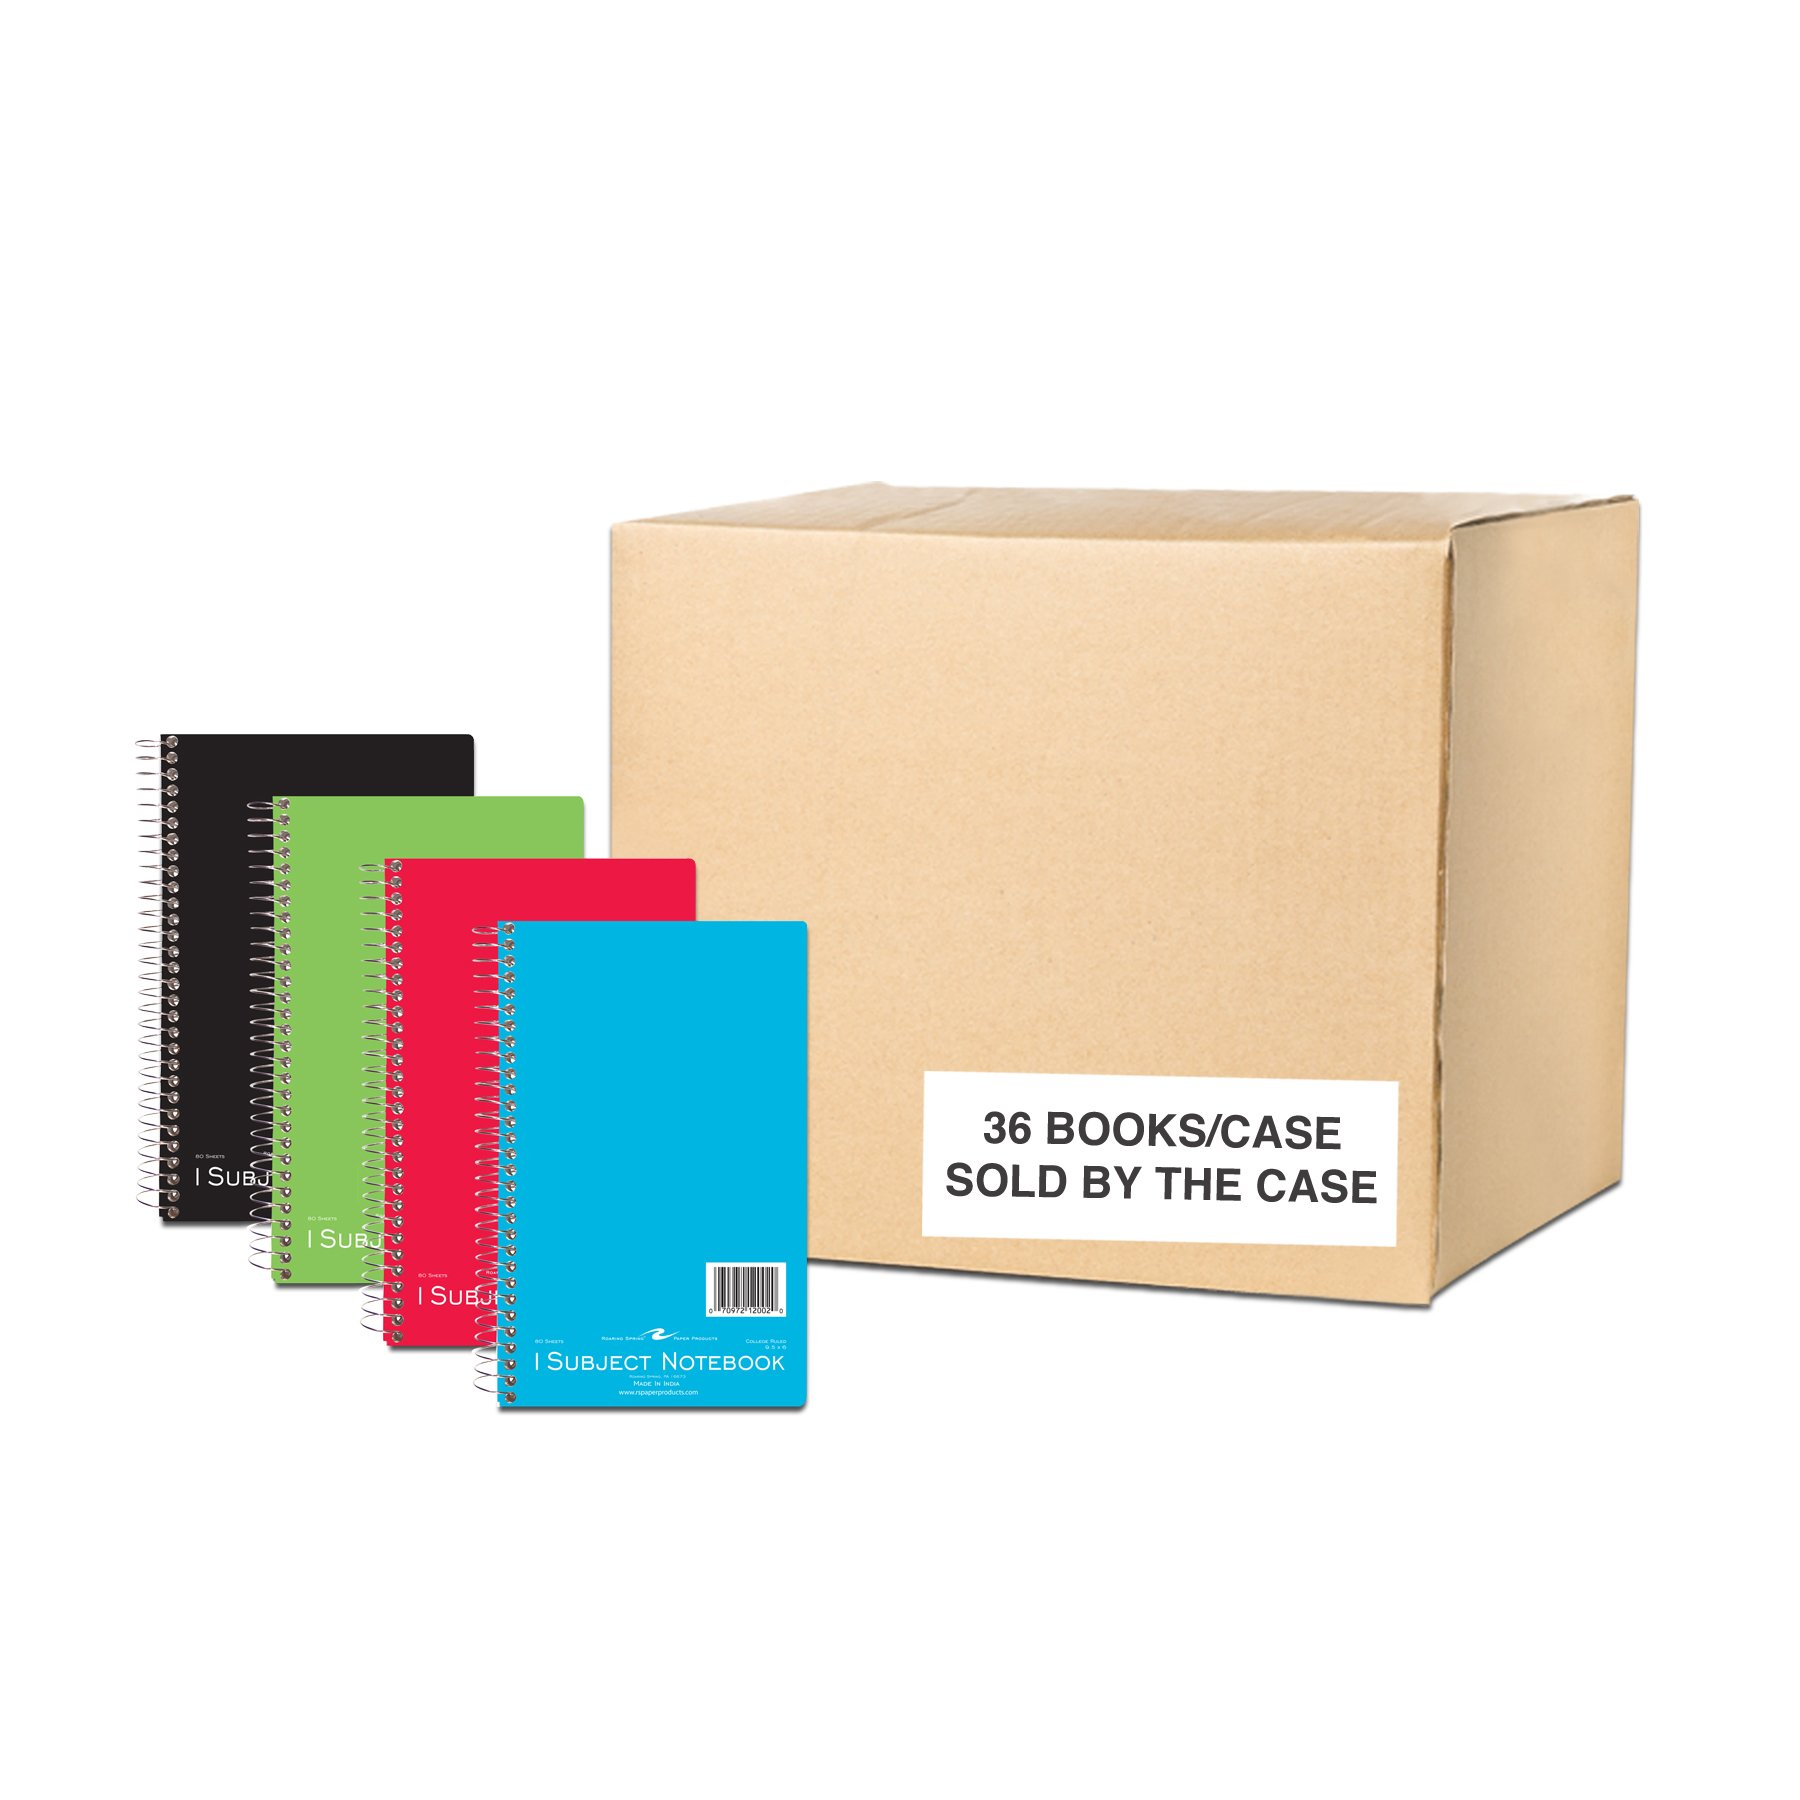 Case of 36 One Subject Wirebound Notebooks, 9.5''x6'', 80 sheets 15# White Paper, Asstd Color covers, College Ruled